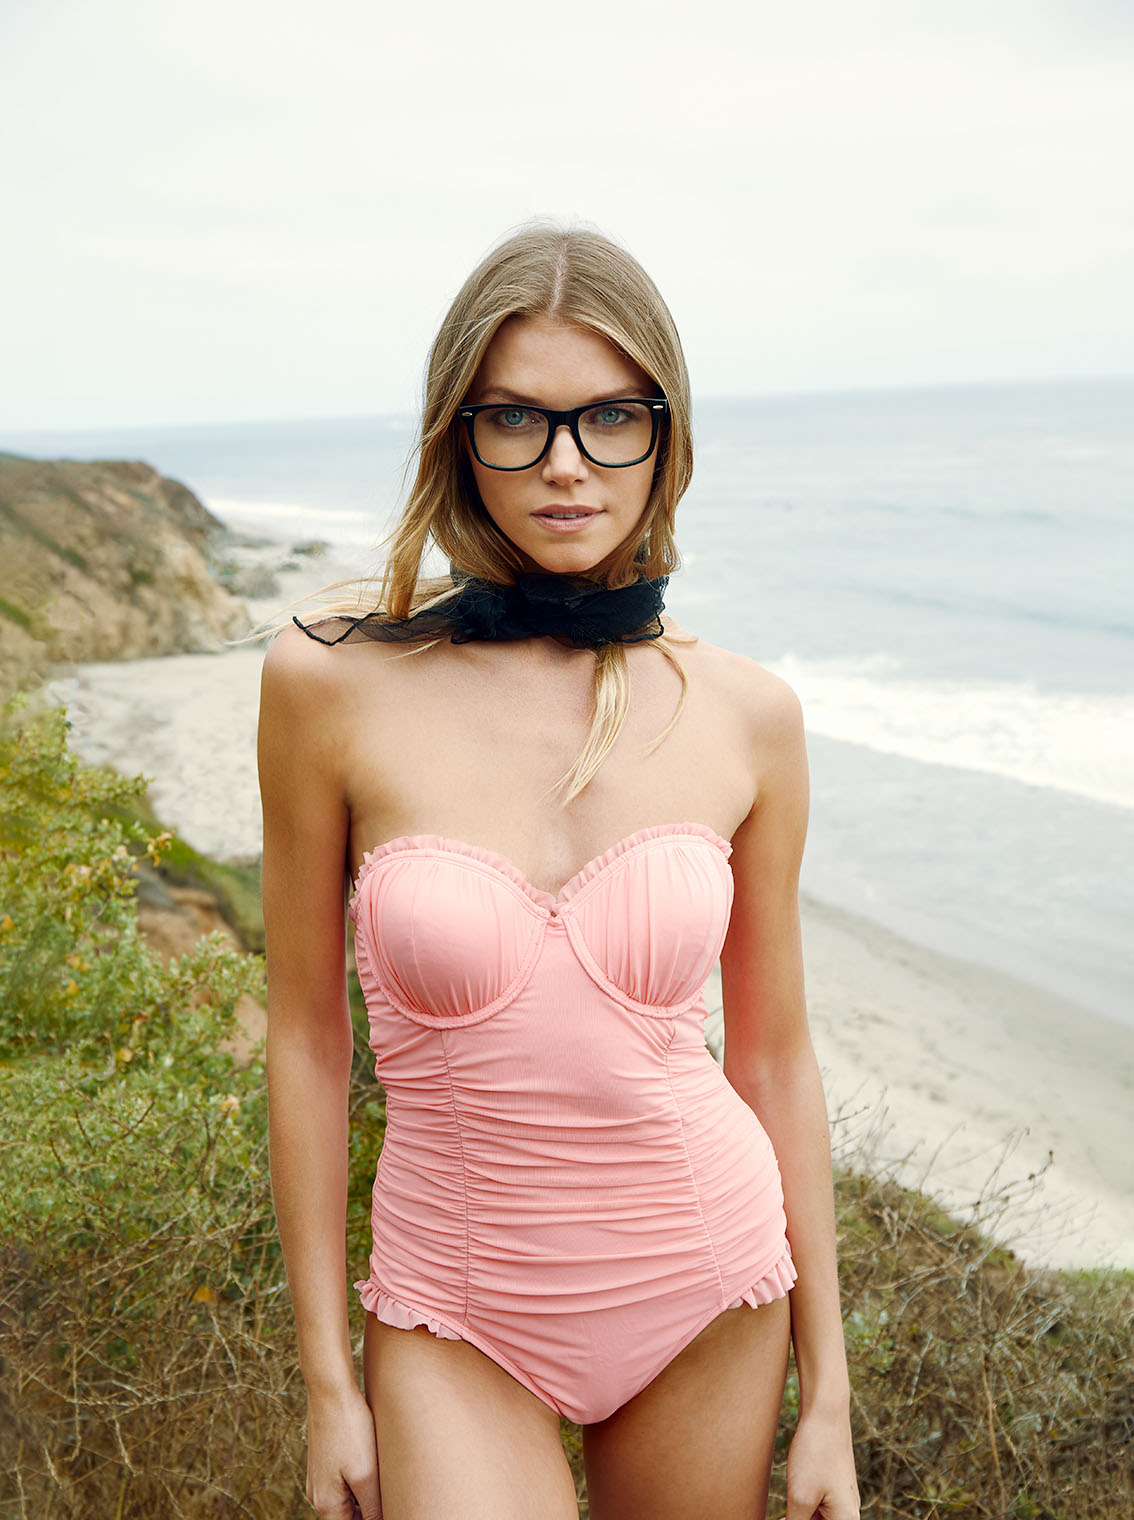 girl in pink swimwear at the cliffs overlooking the Pacific Ocean in Malibu, California